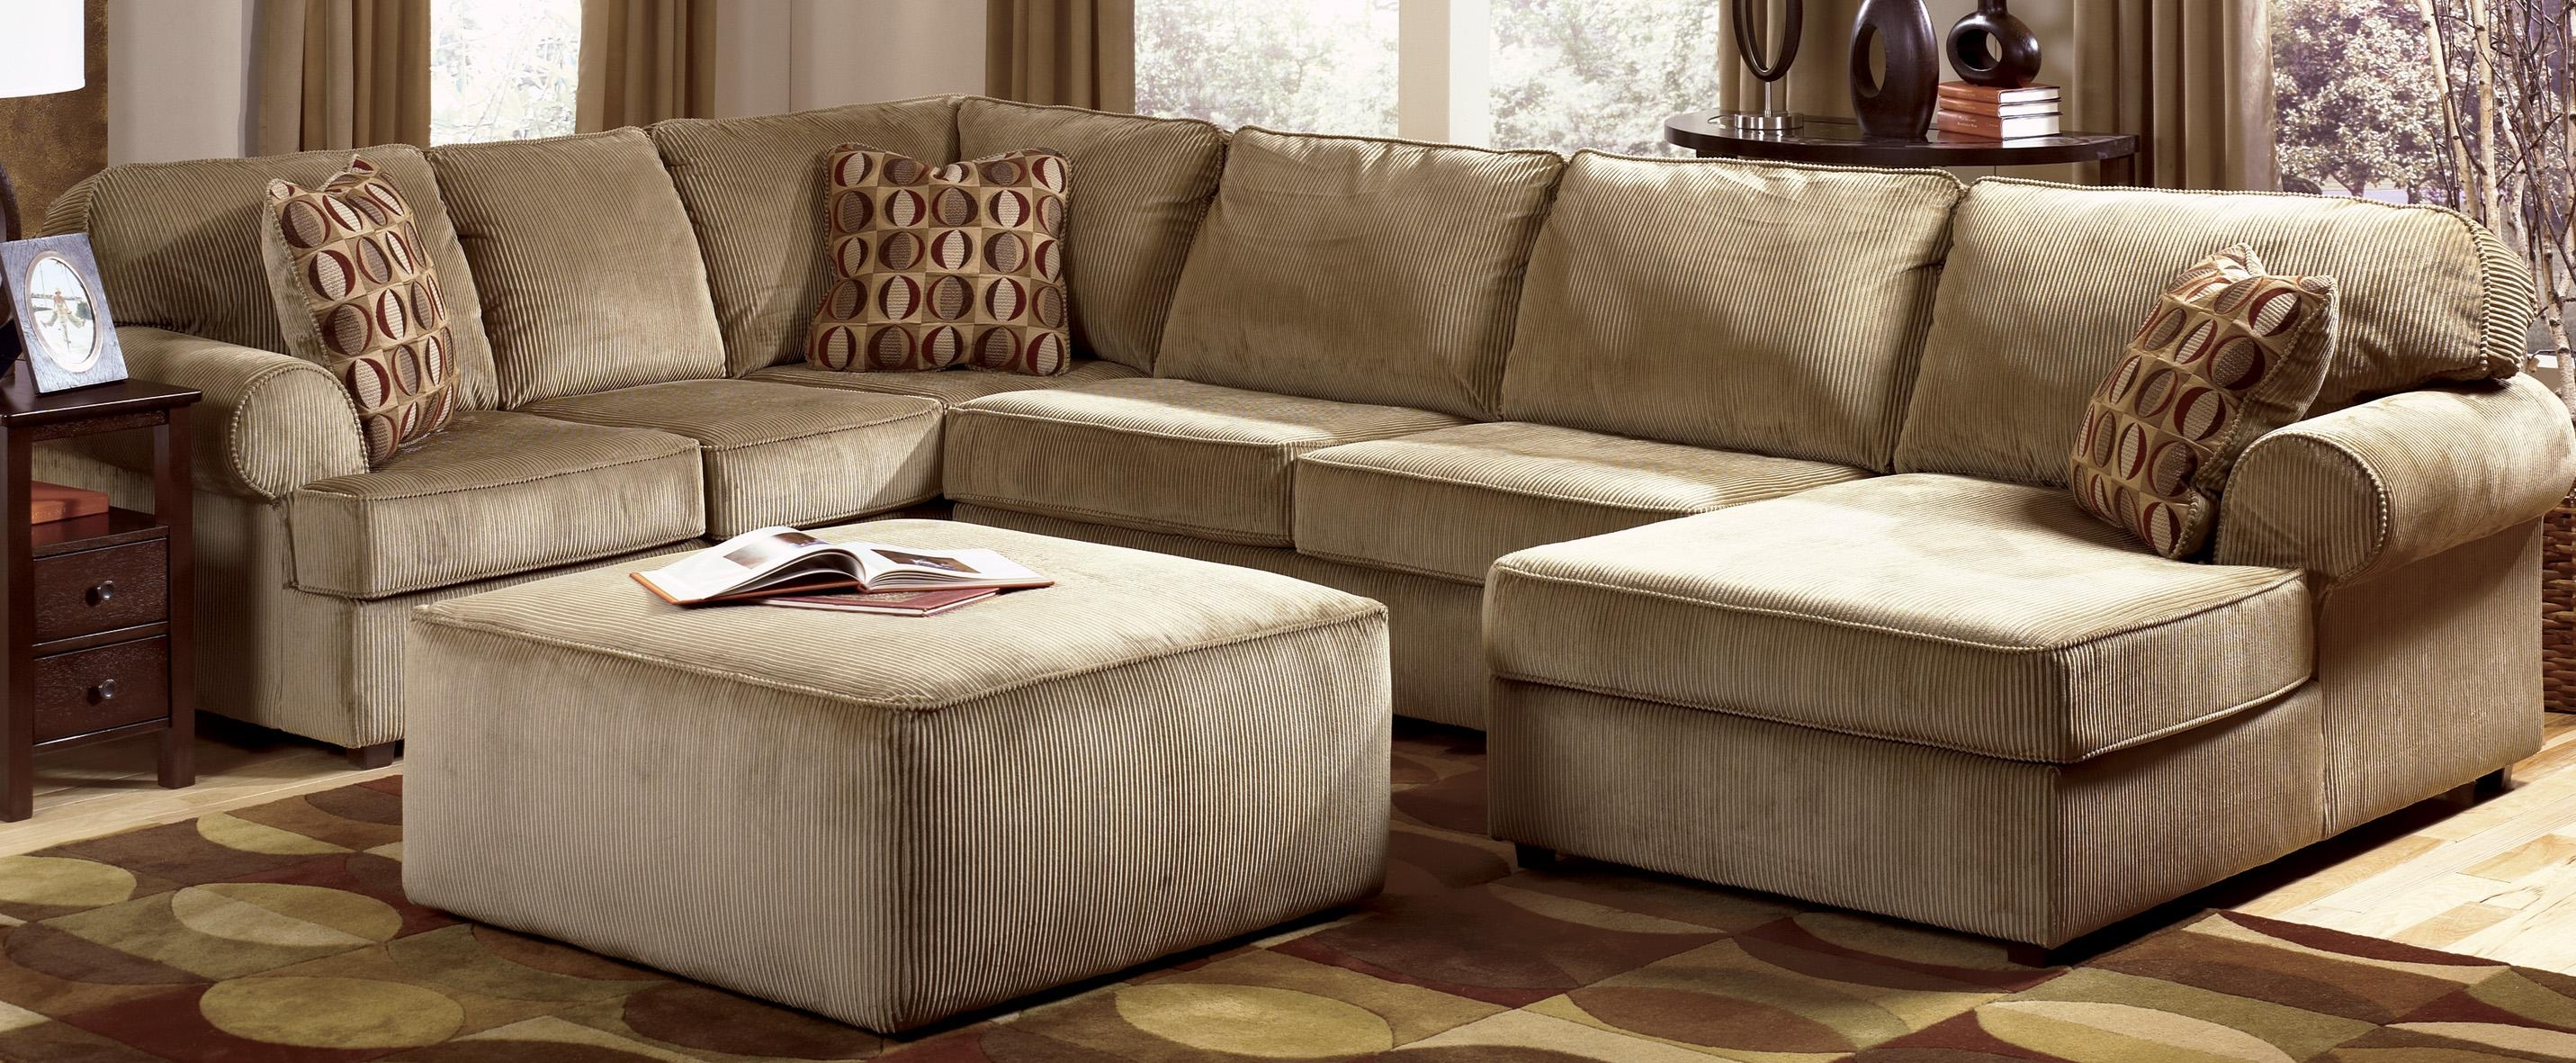 Interior: Stunning Micro Cheap Leather Sectionals For Living Room Regarding Discounted Sectional Sofa (Image 11 of 15)